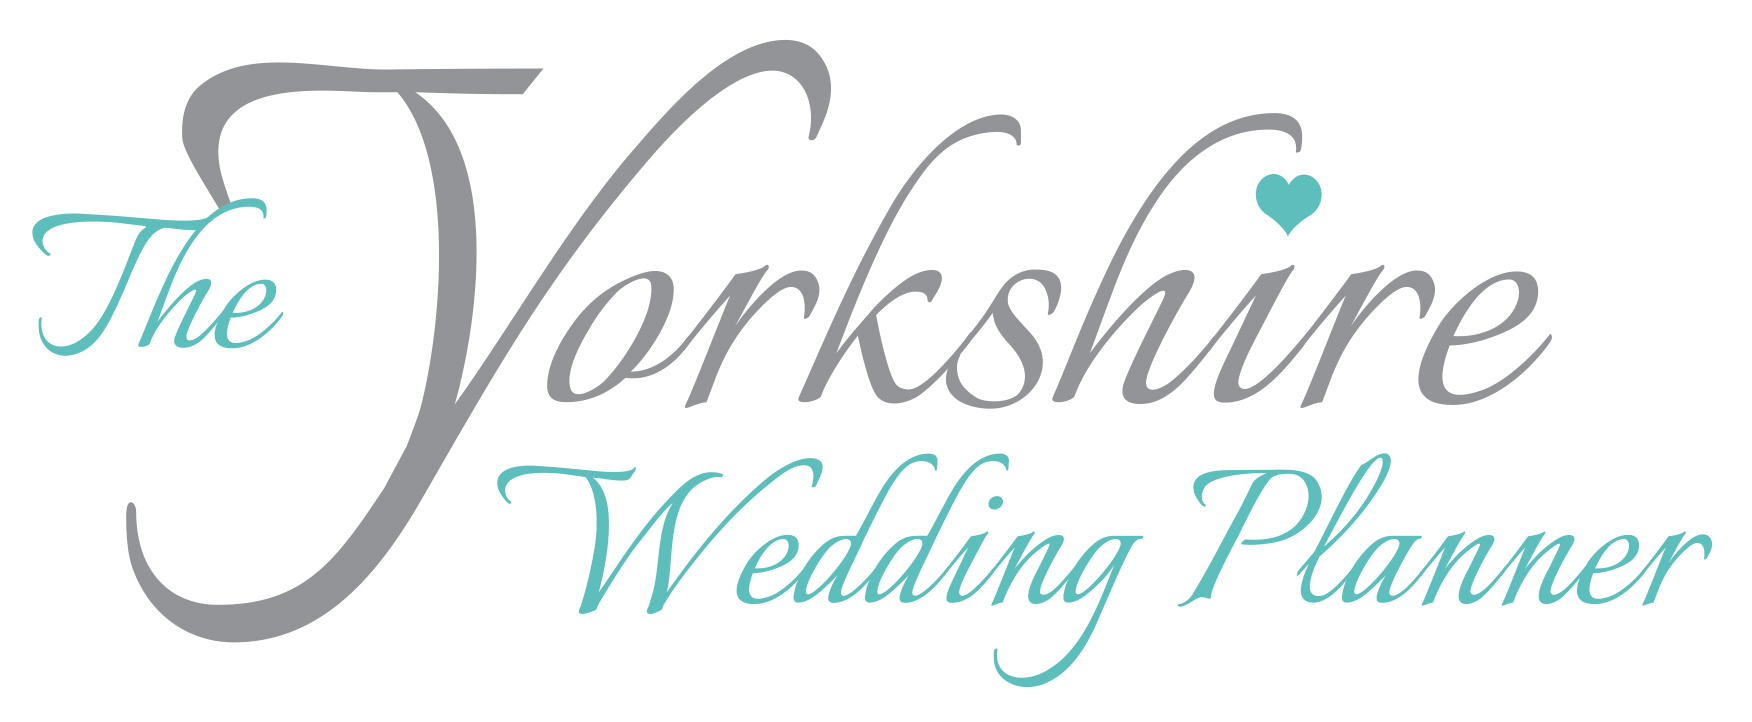 The Yorkshire Wedding Planner